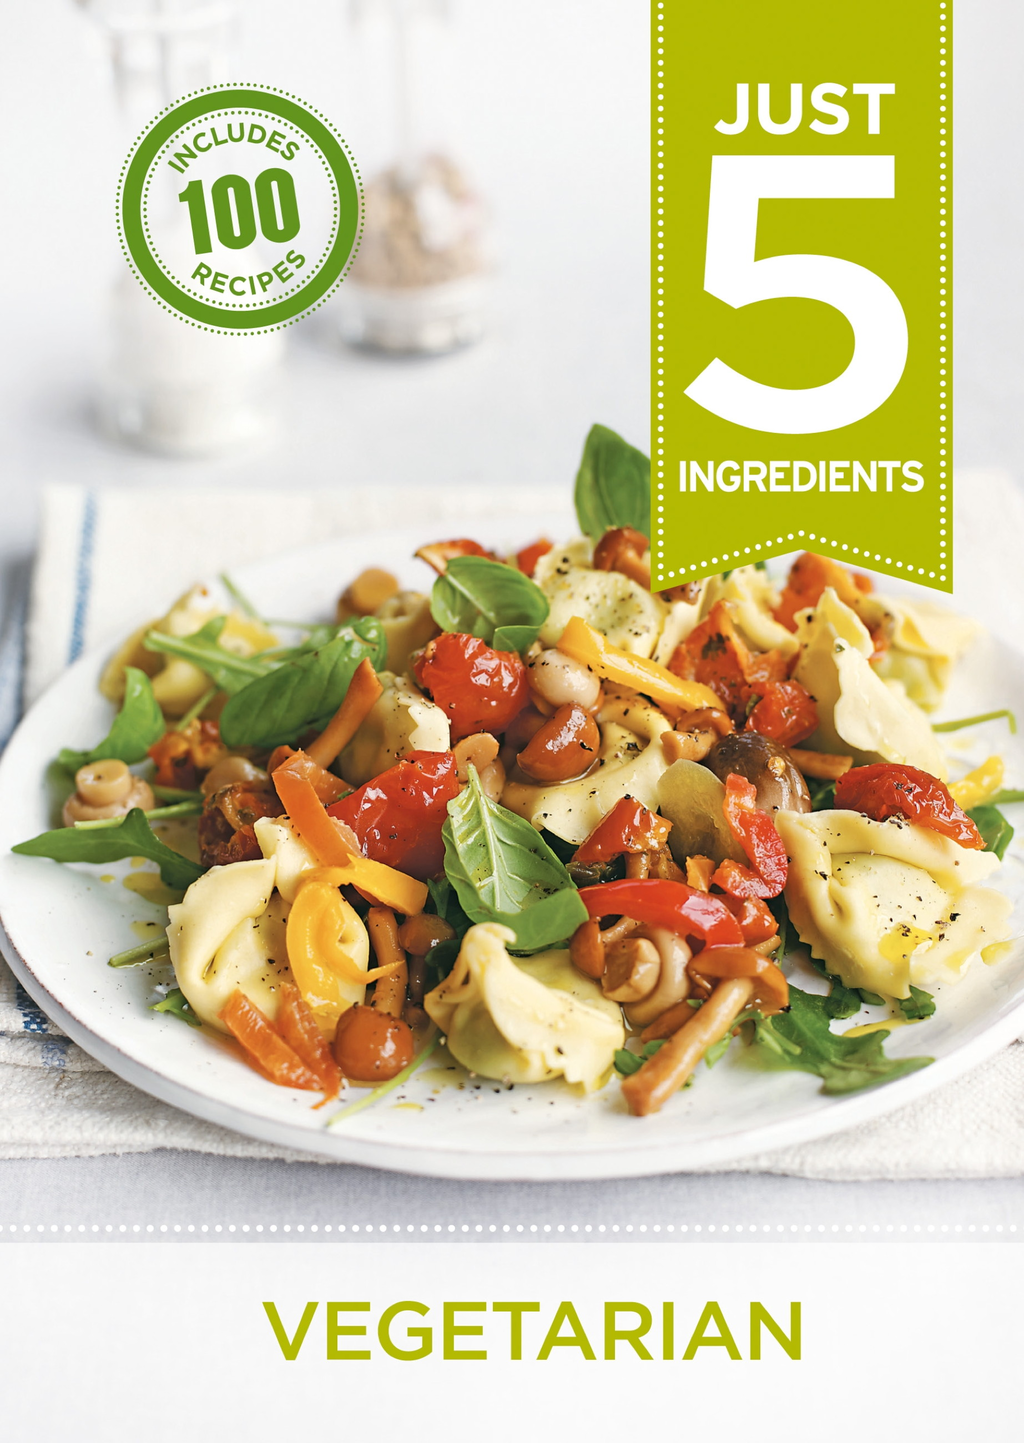 Just 5: Vegetarian Make life simple with over 100 recipes using 5 ingredients or fewer